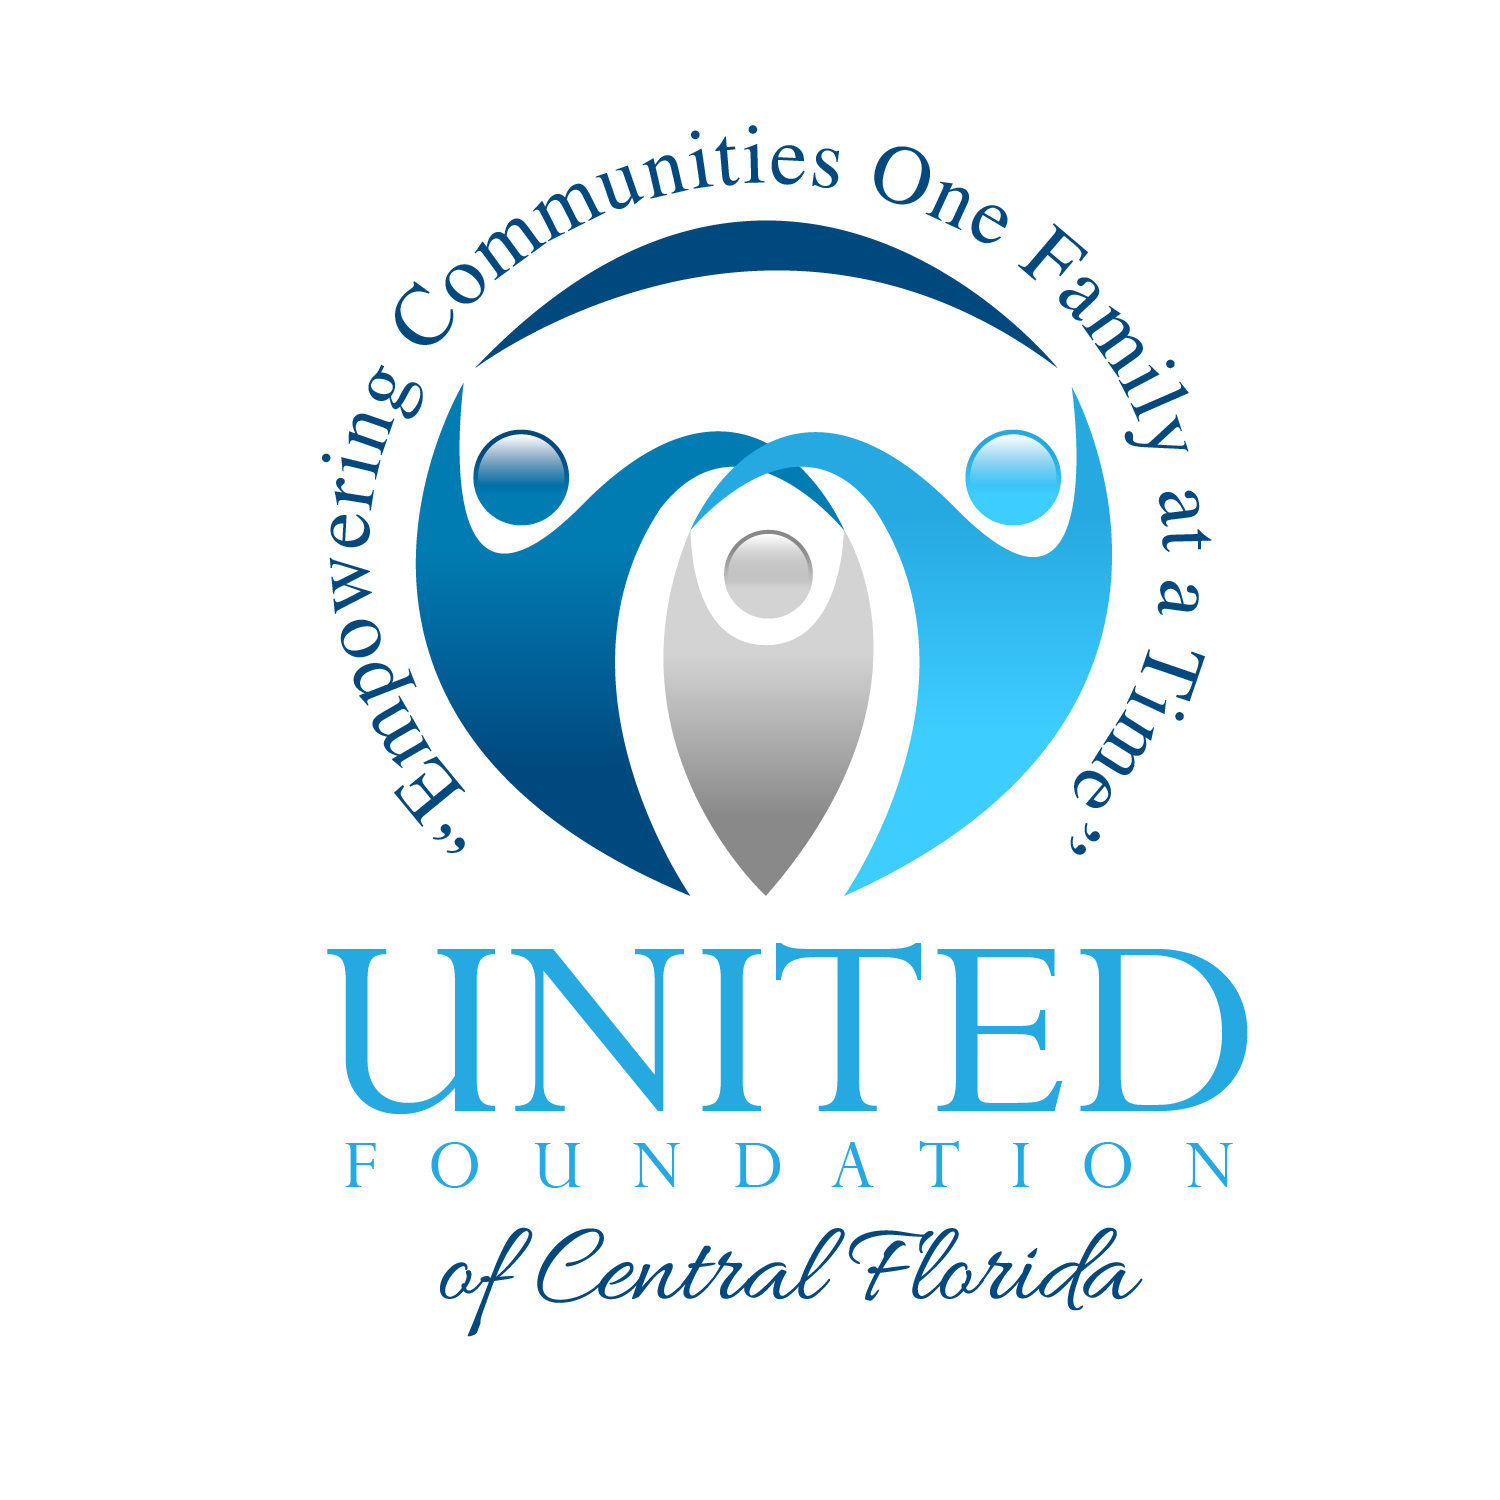 United Foundation of Central Florida, Inc